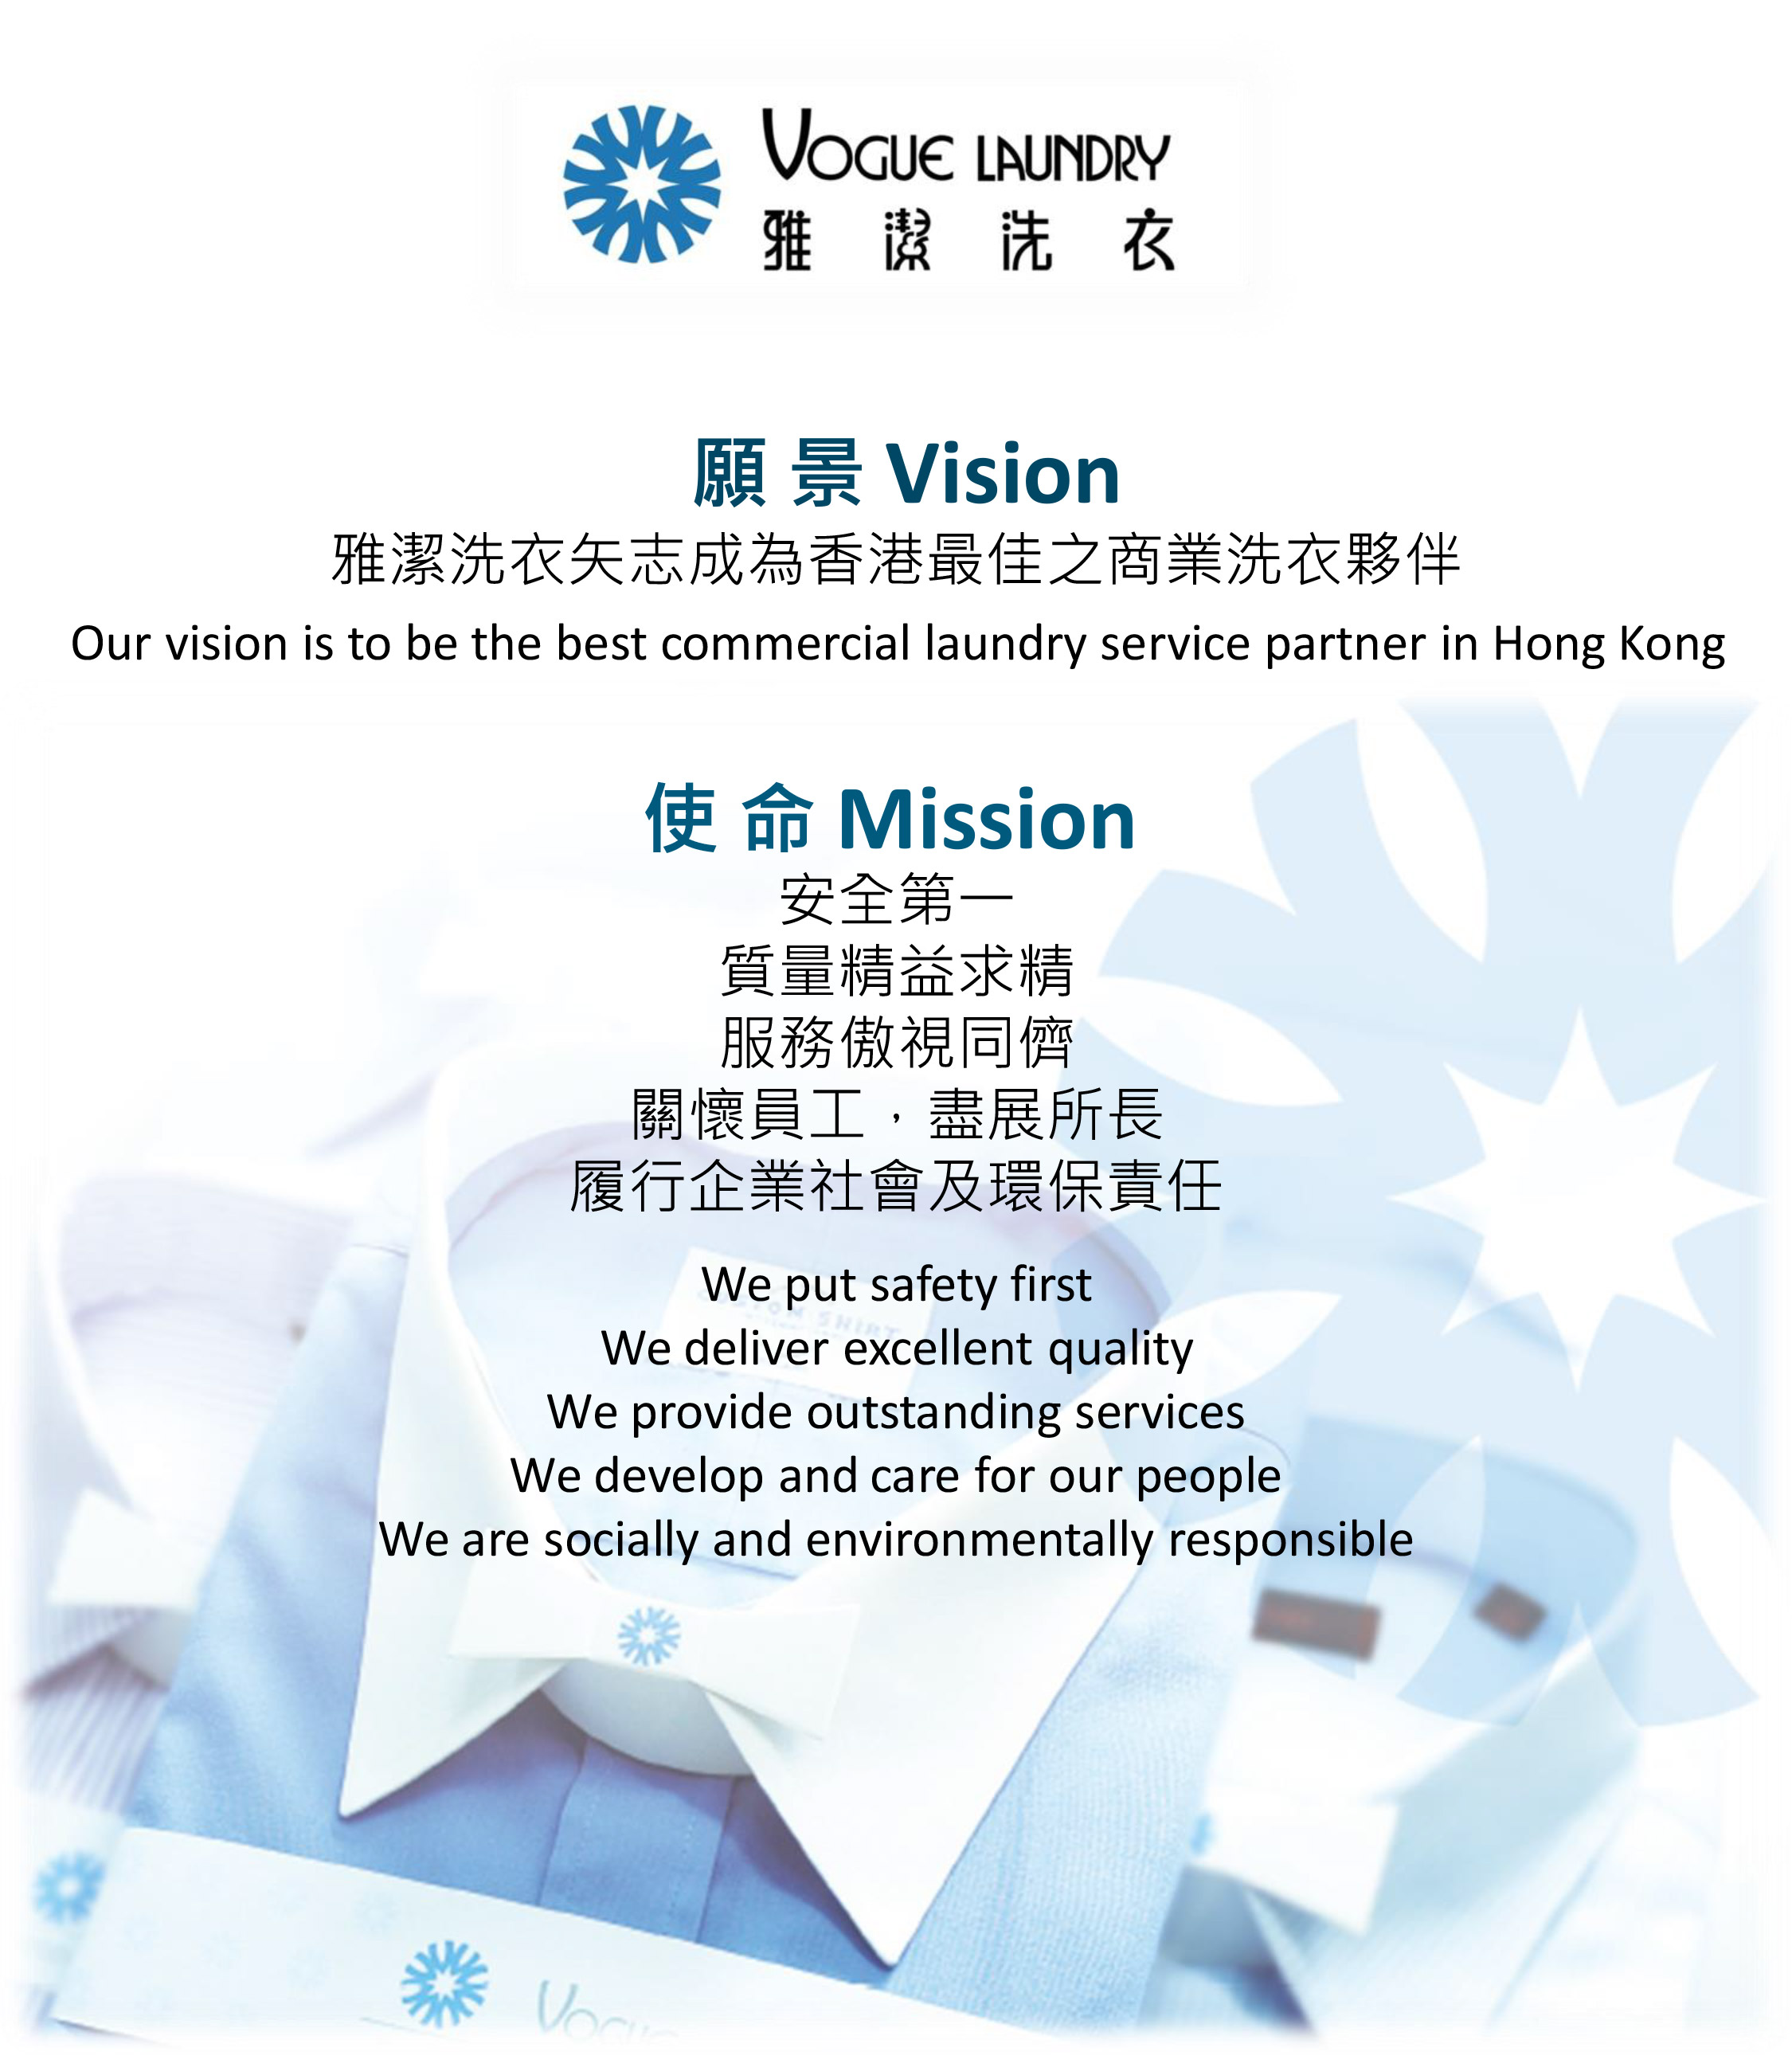 Vogue Laundry's vision is to be the best commercial laundry service partner in Hong Kong.